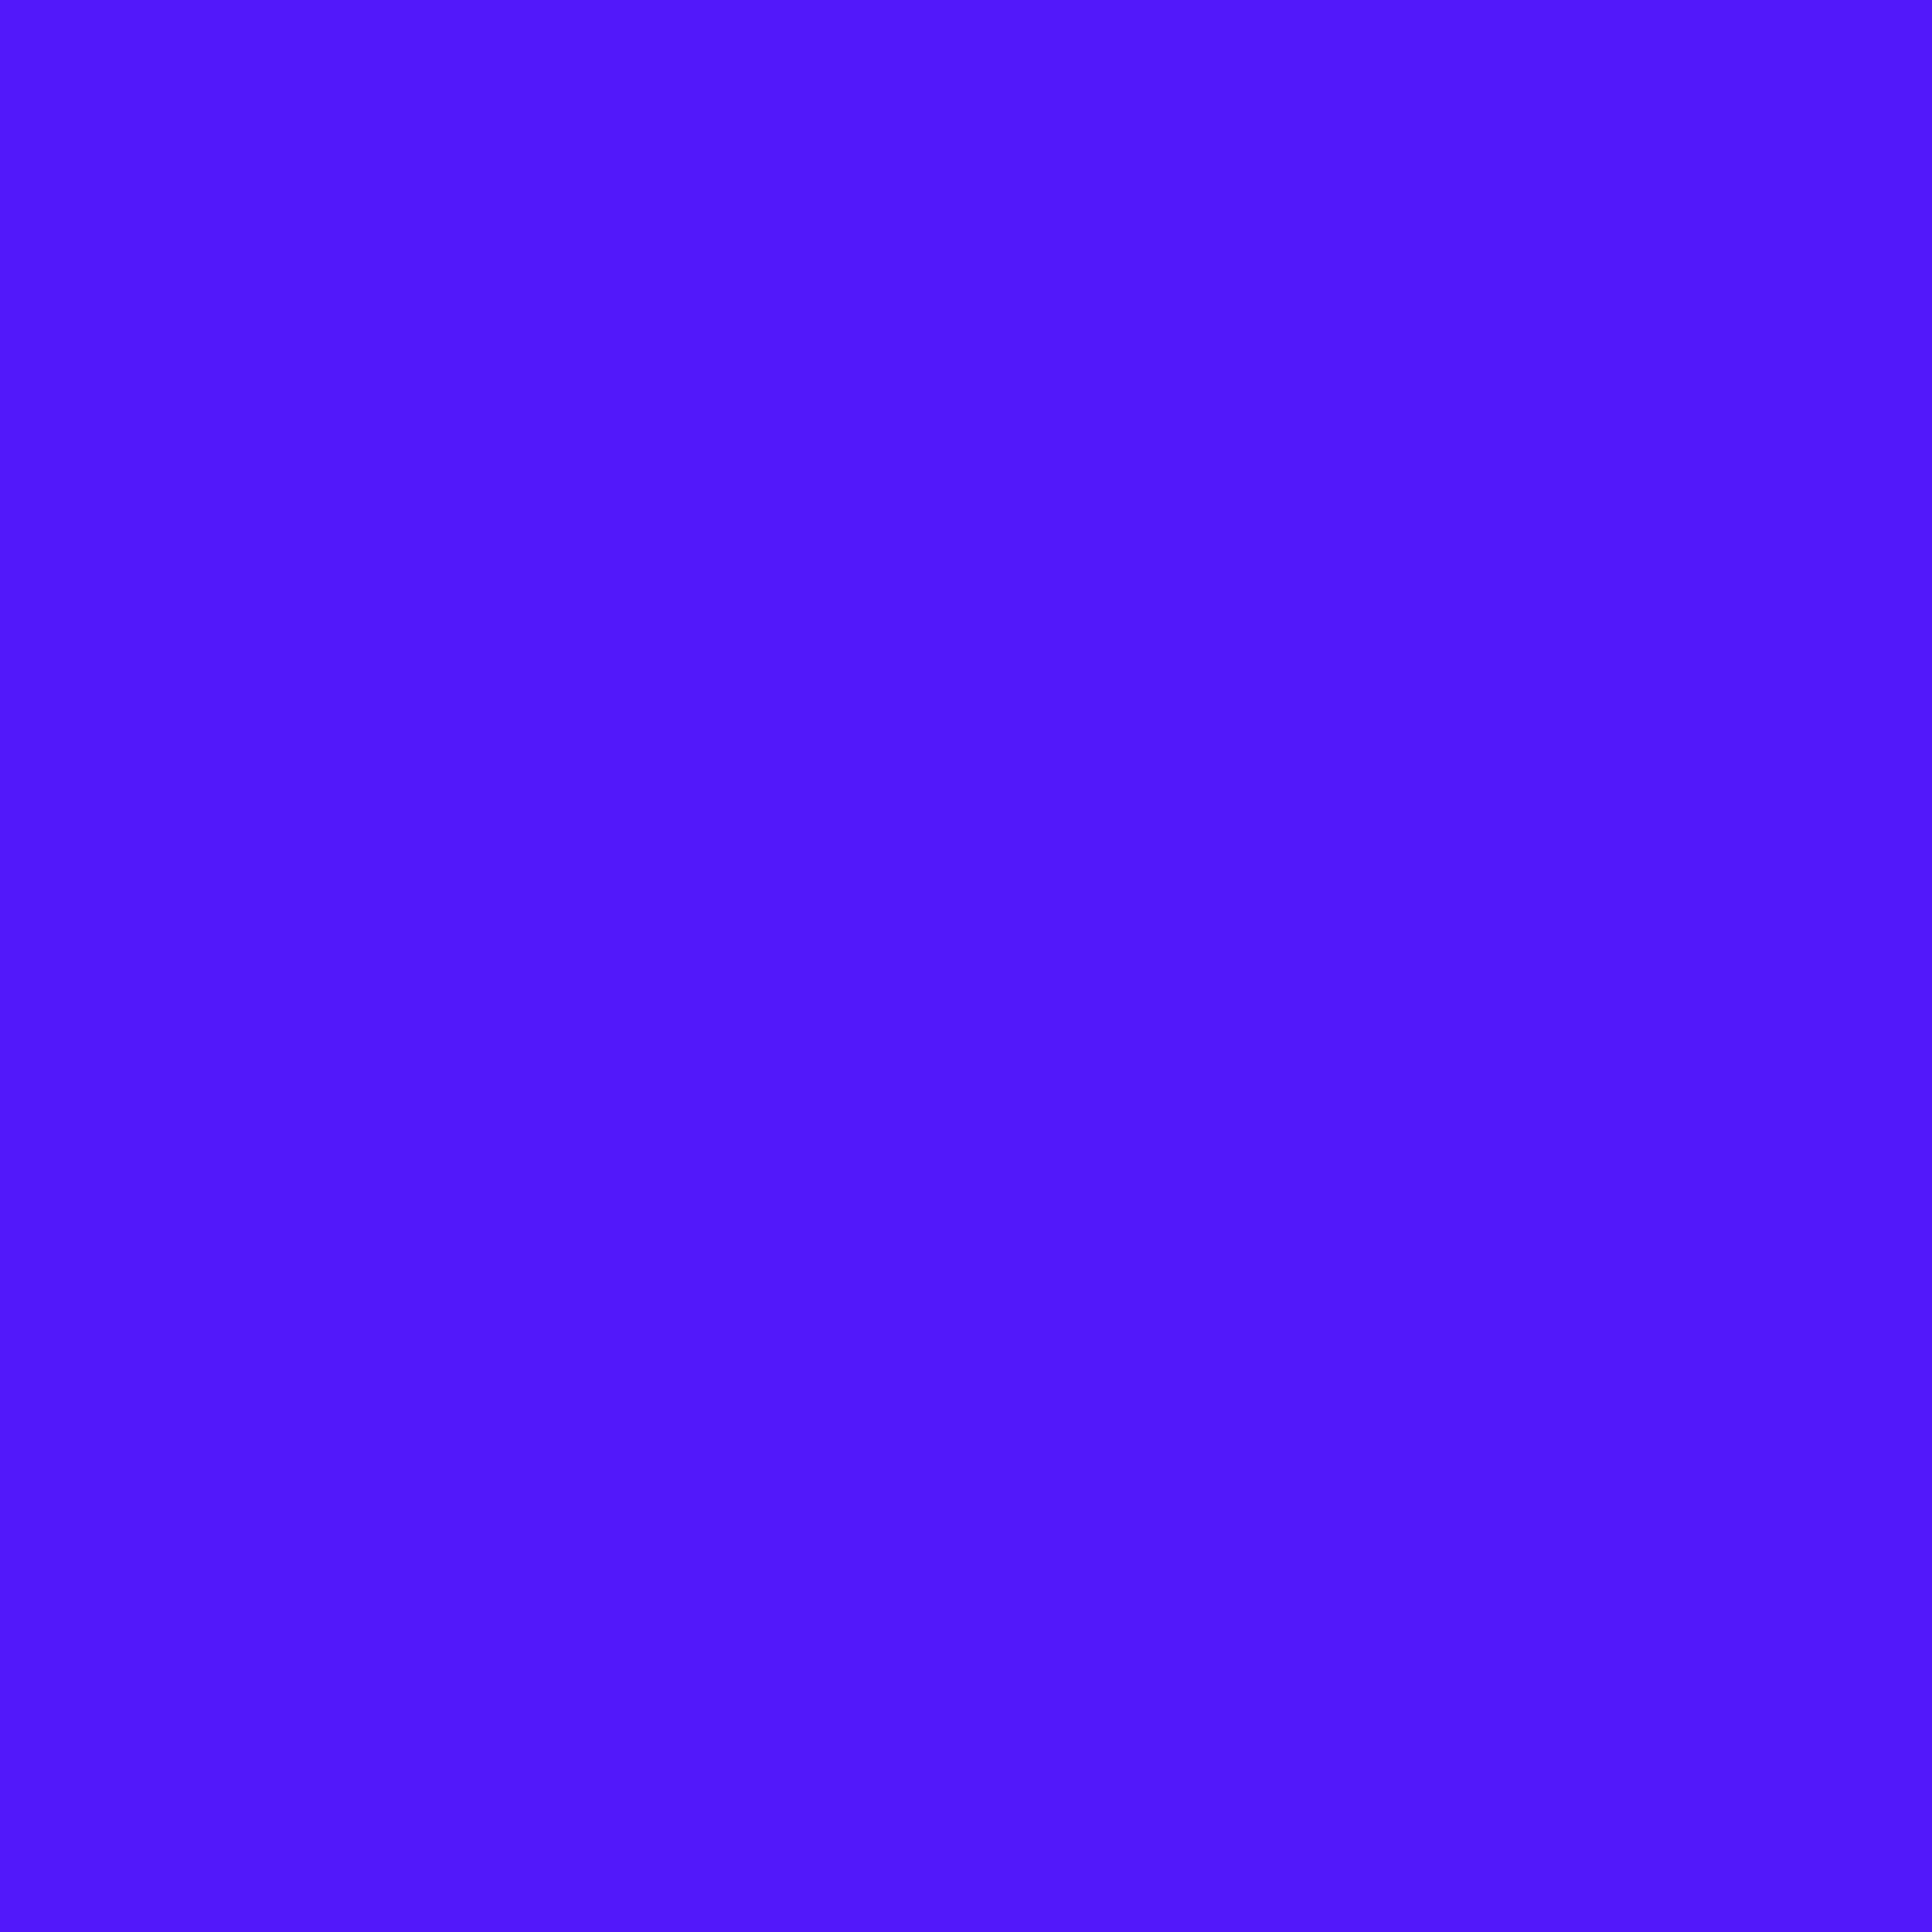 3600x3600 Han Purple Solid Color Background